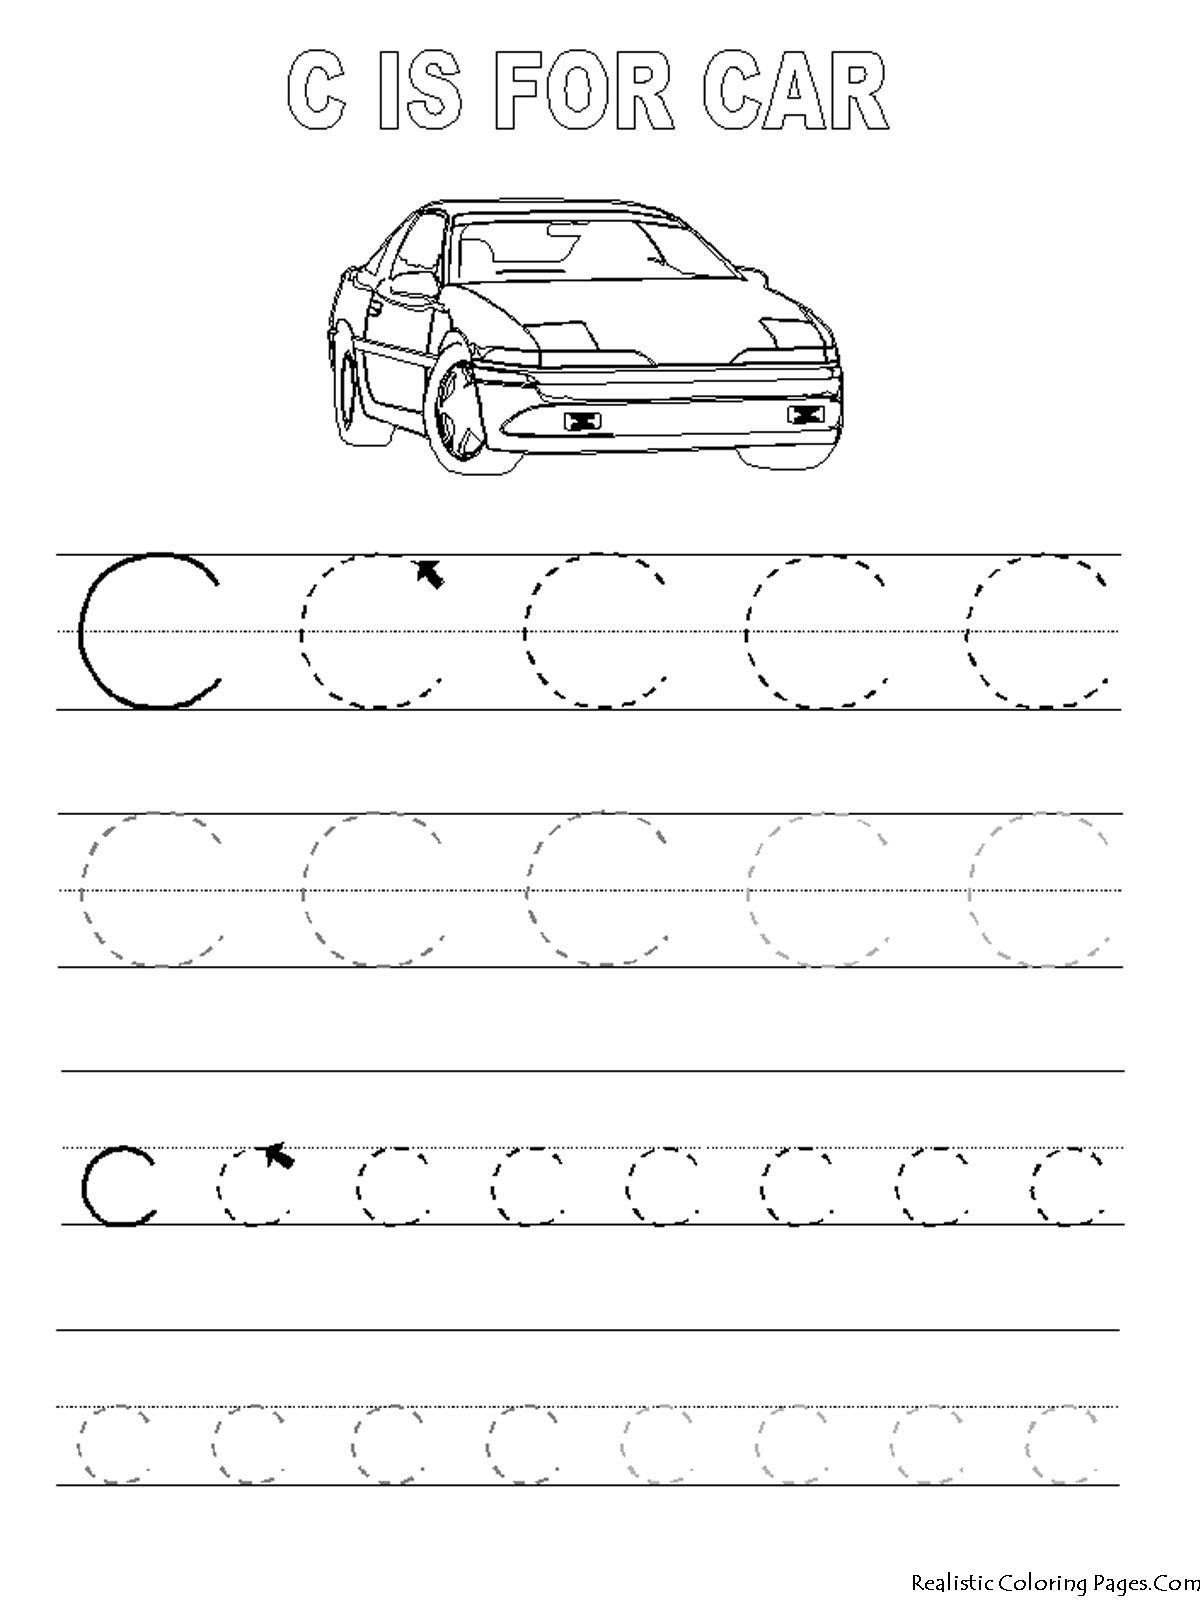 Coloring sheet of the letter t - Find This Pin And More On Coloring Pages By Bullgallery